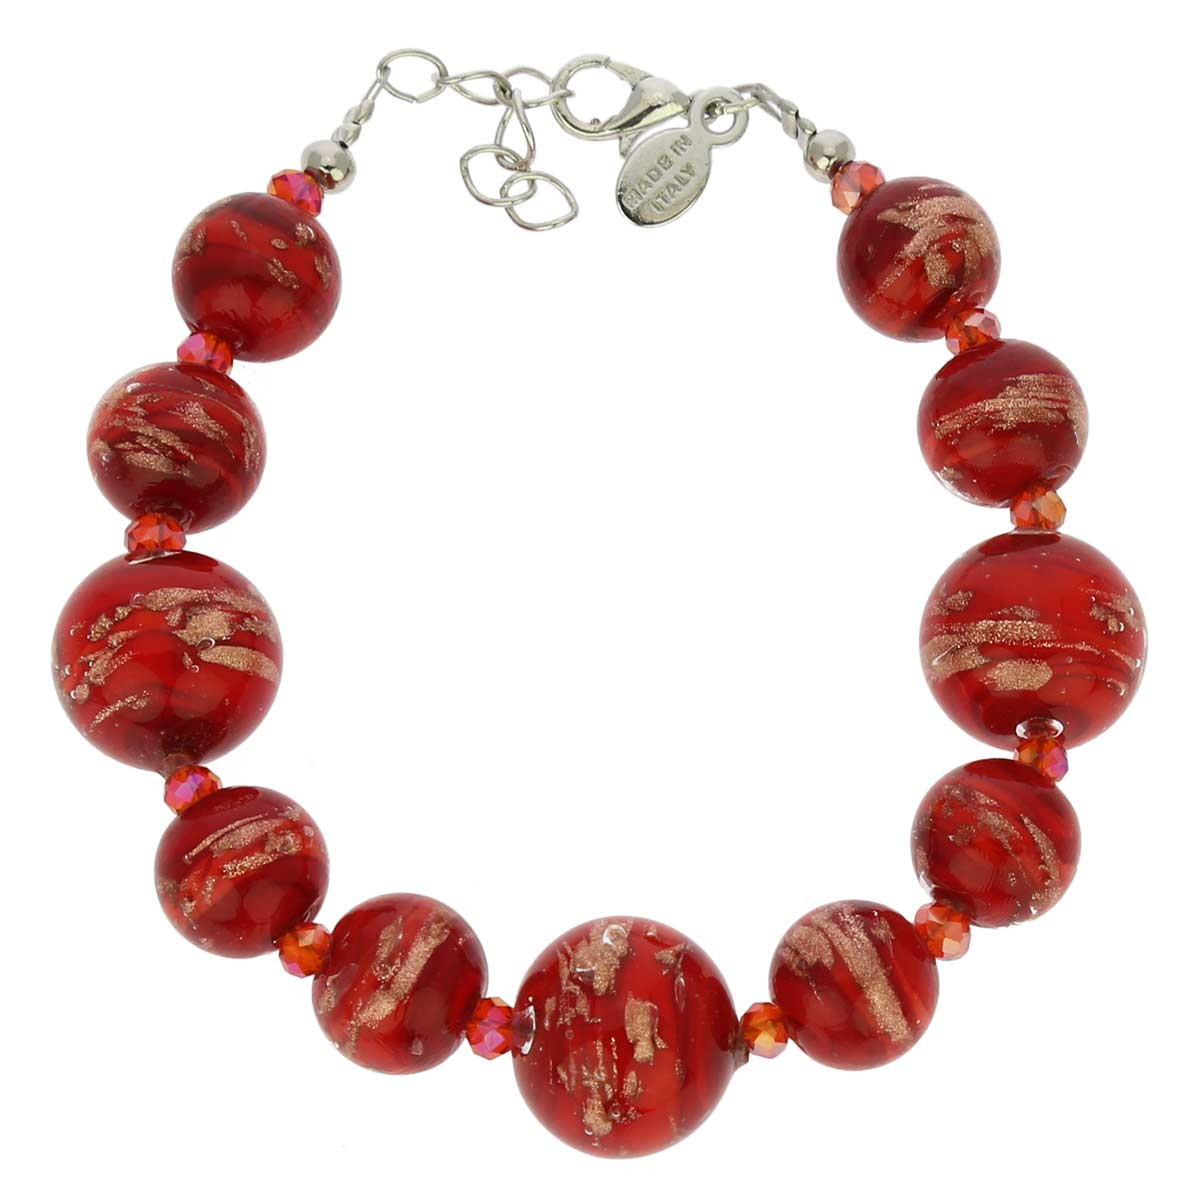 Starlight Balls Murano Bracelet - Fire Red